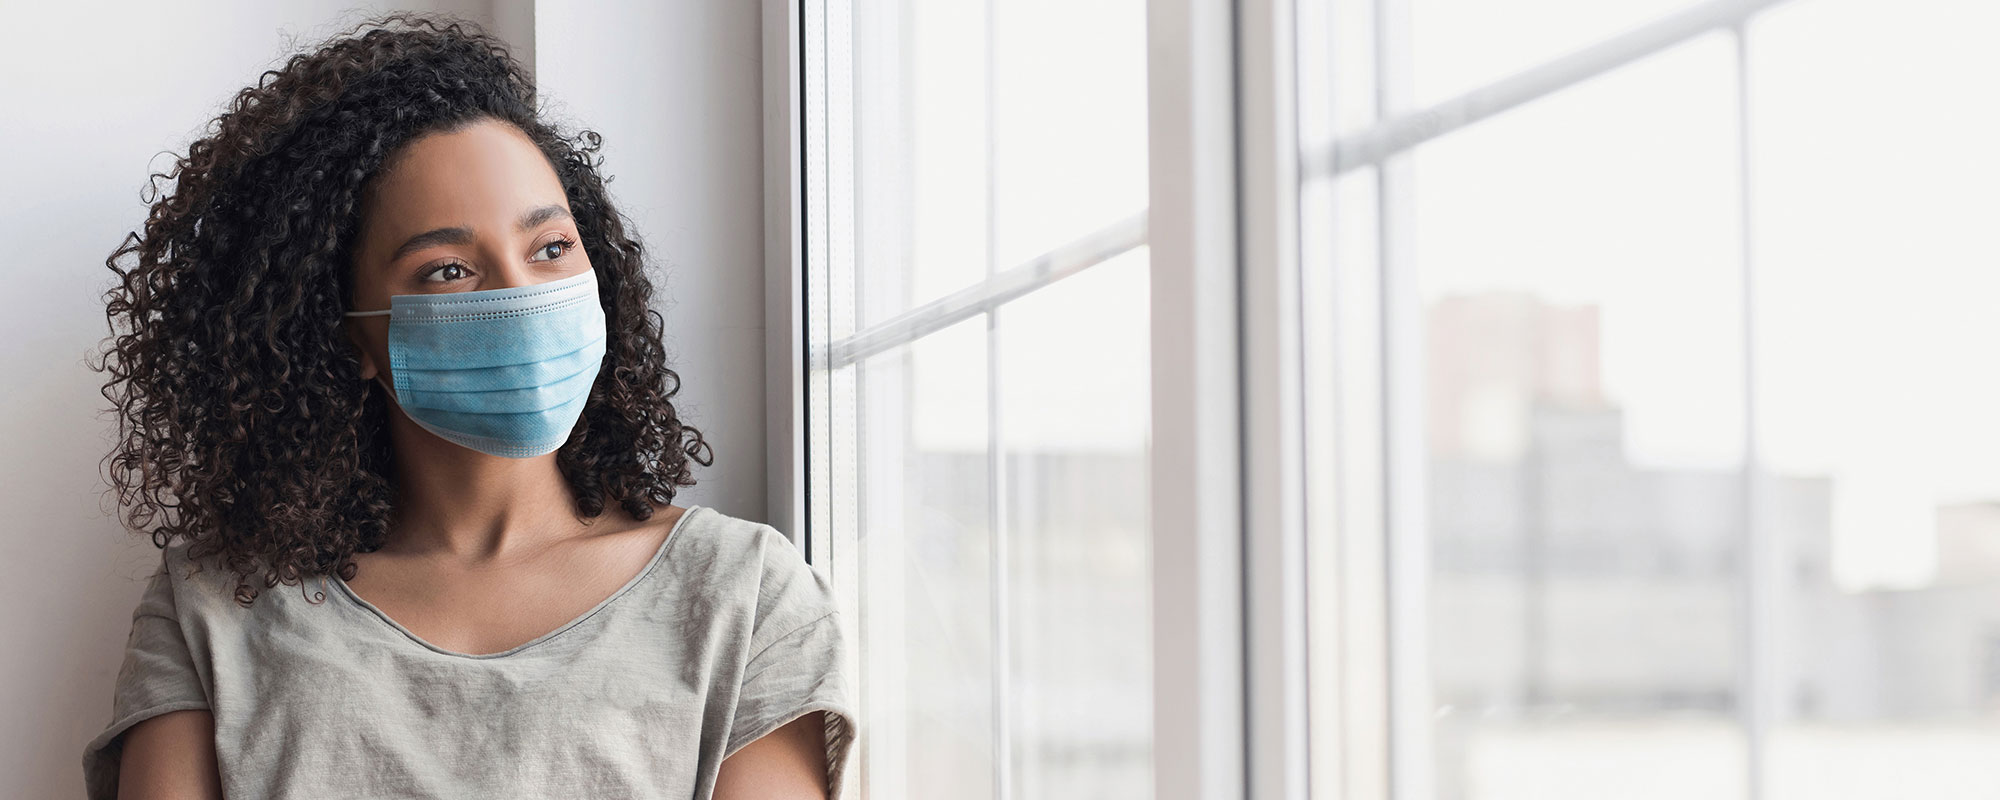 Woman wearing medical mask looking out window